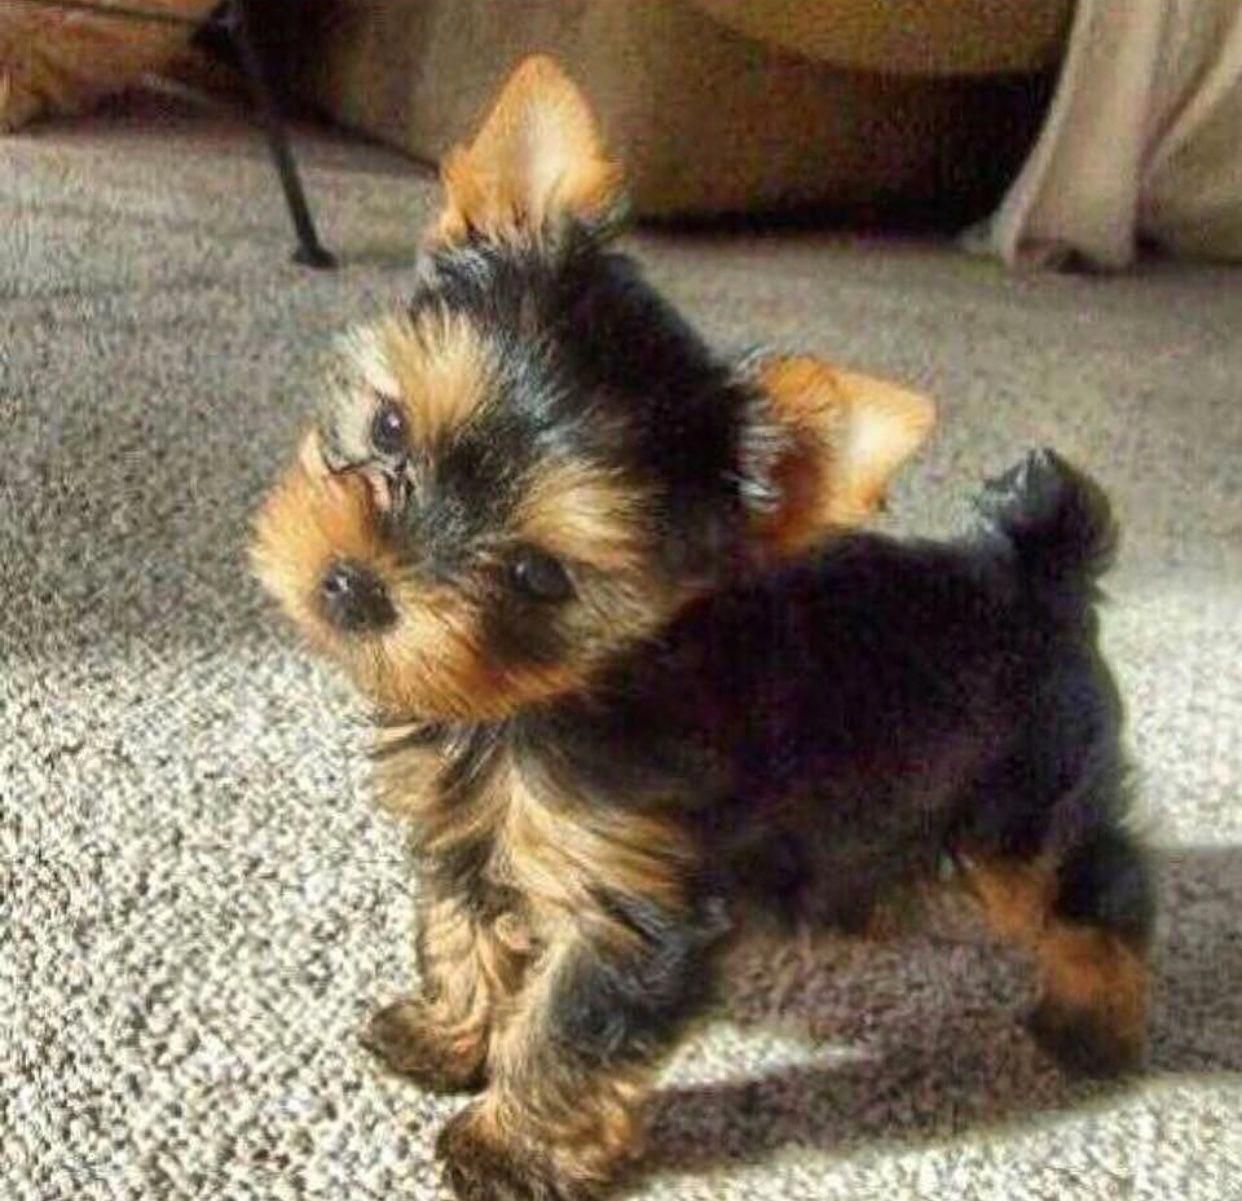 Pin By Sharrie Page On Yorkshire Terriers Yorkie Puppy Teacup Yorkie Puppy Yorkshire Terrier Dog